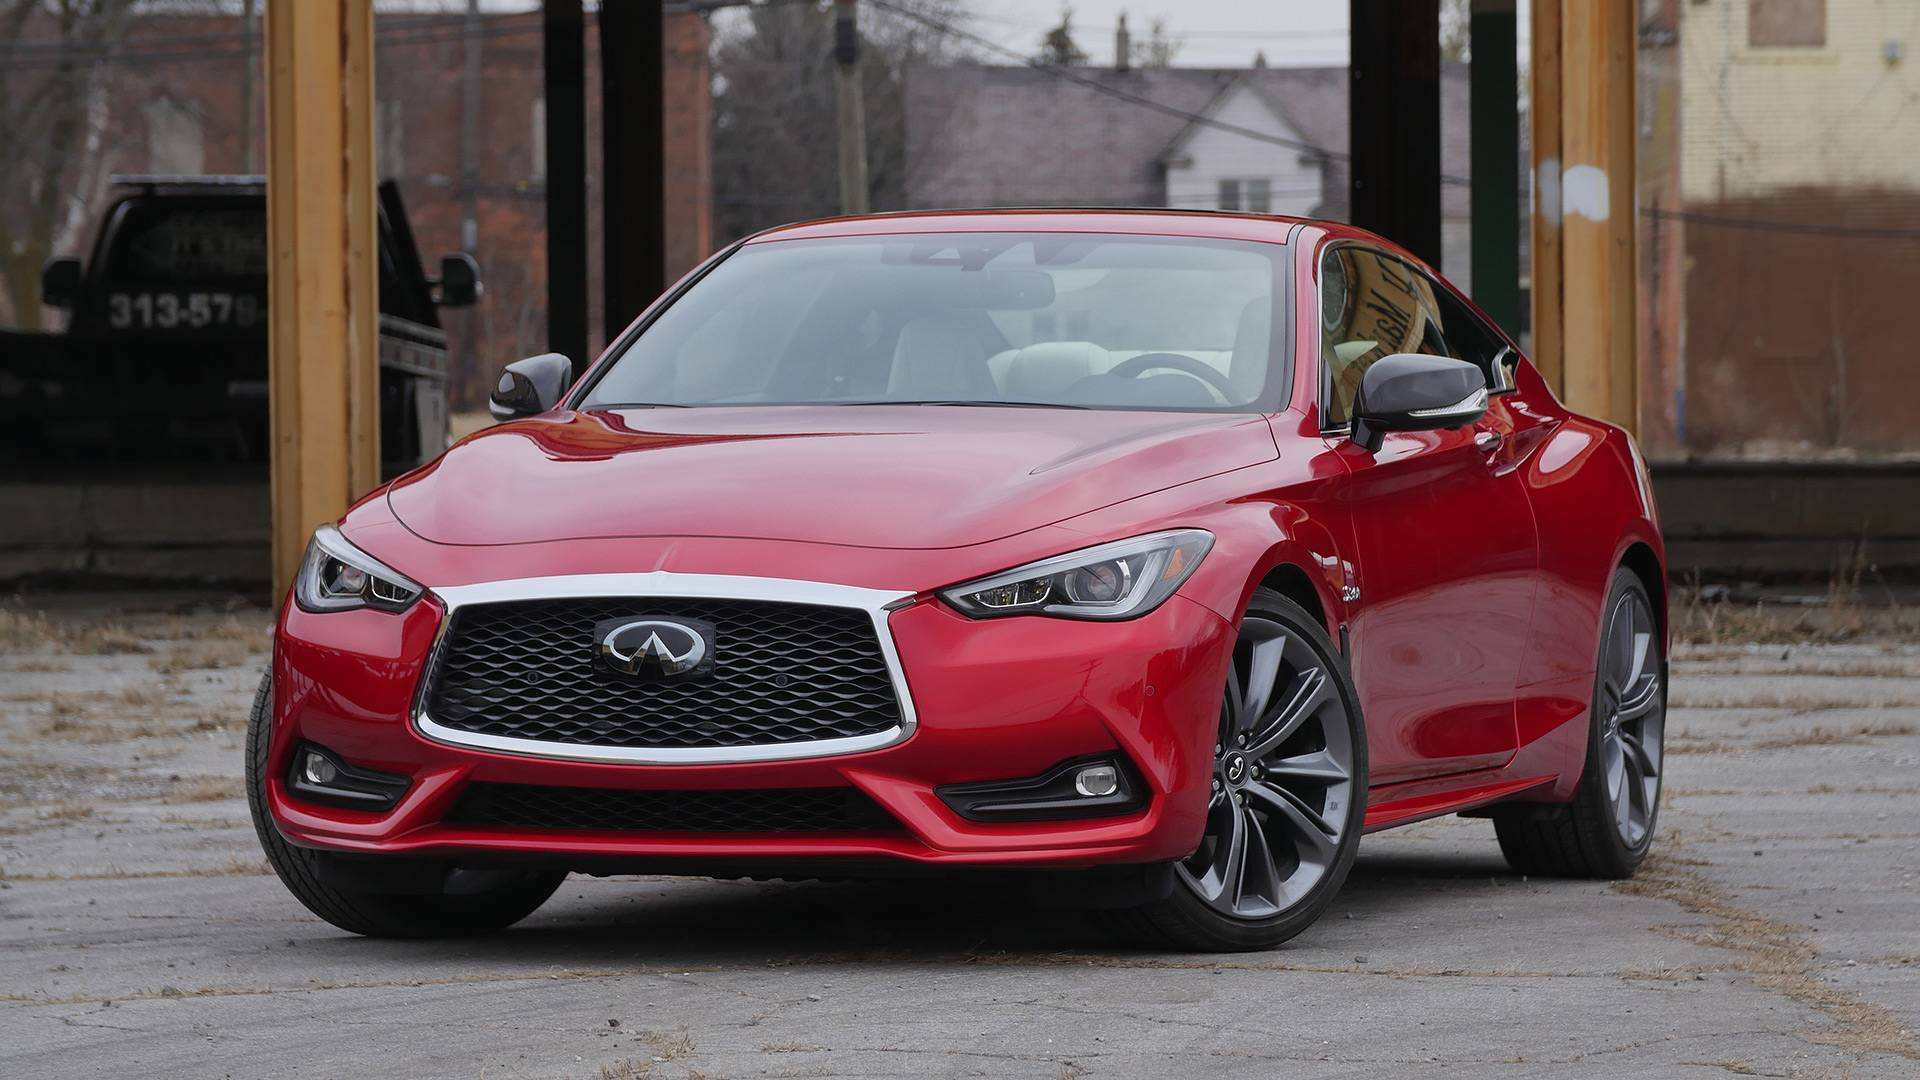 30 All New Infiniti Q50 For 2020 Redesign And Review